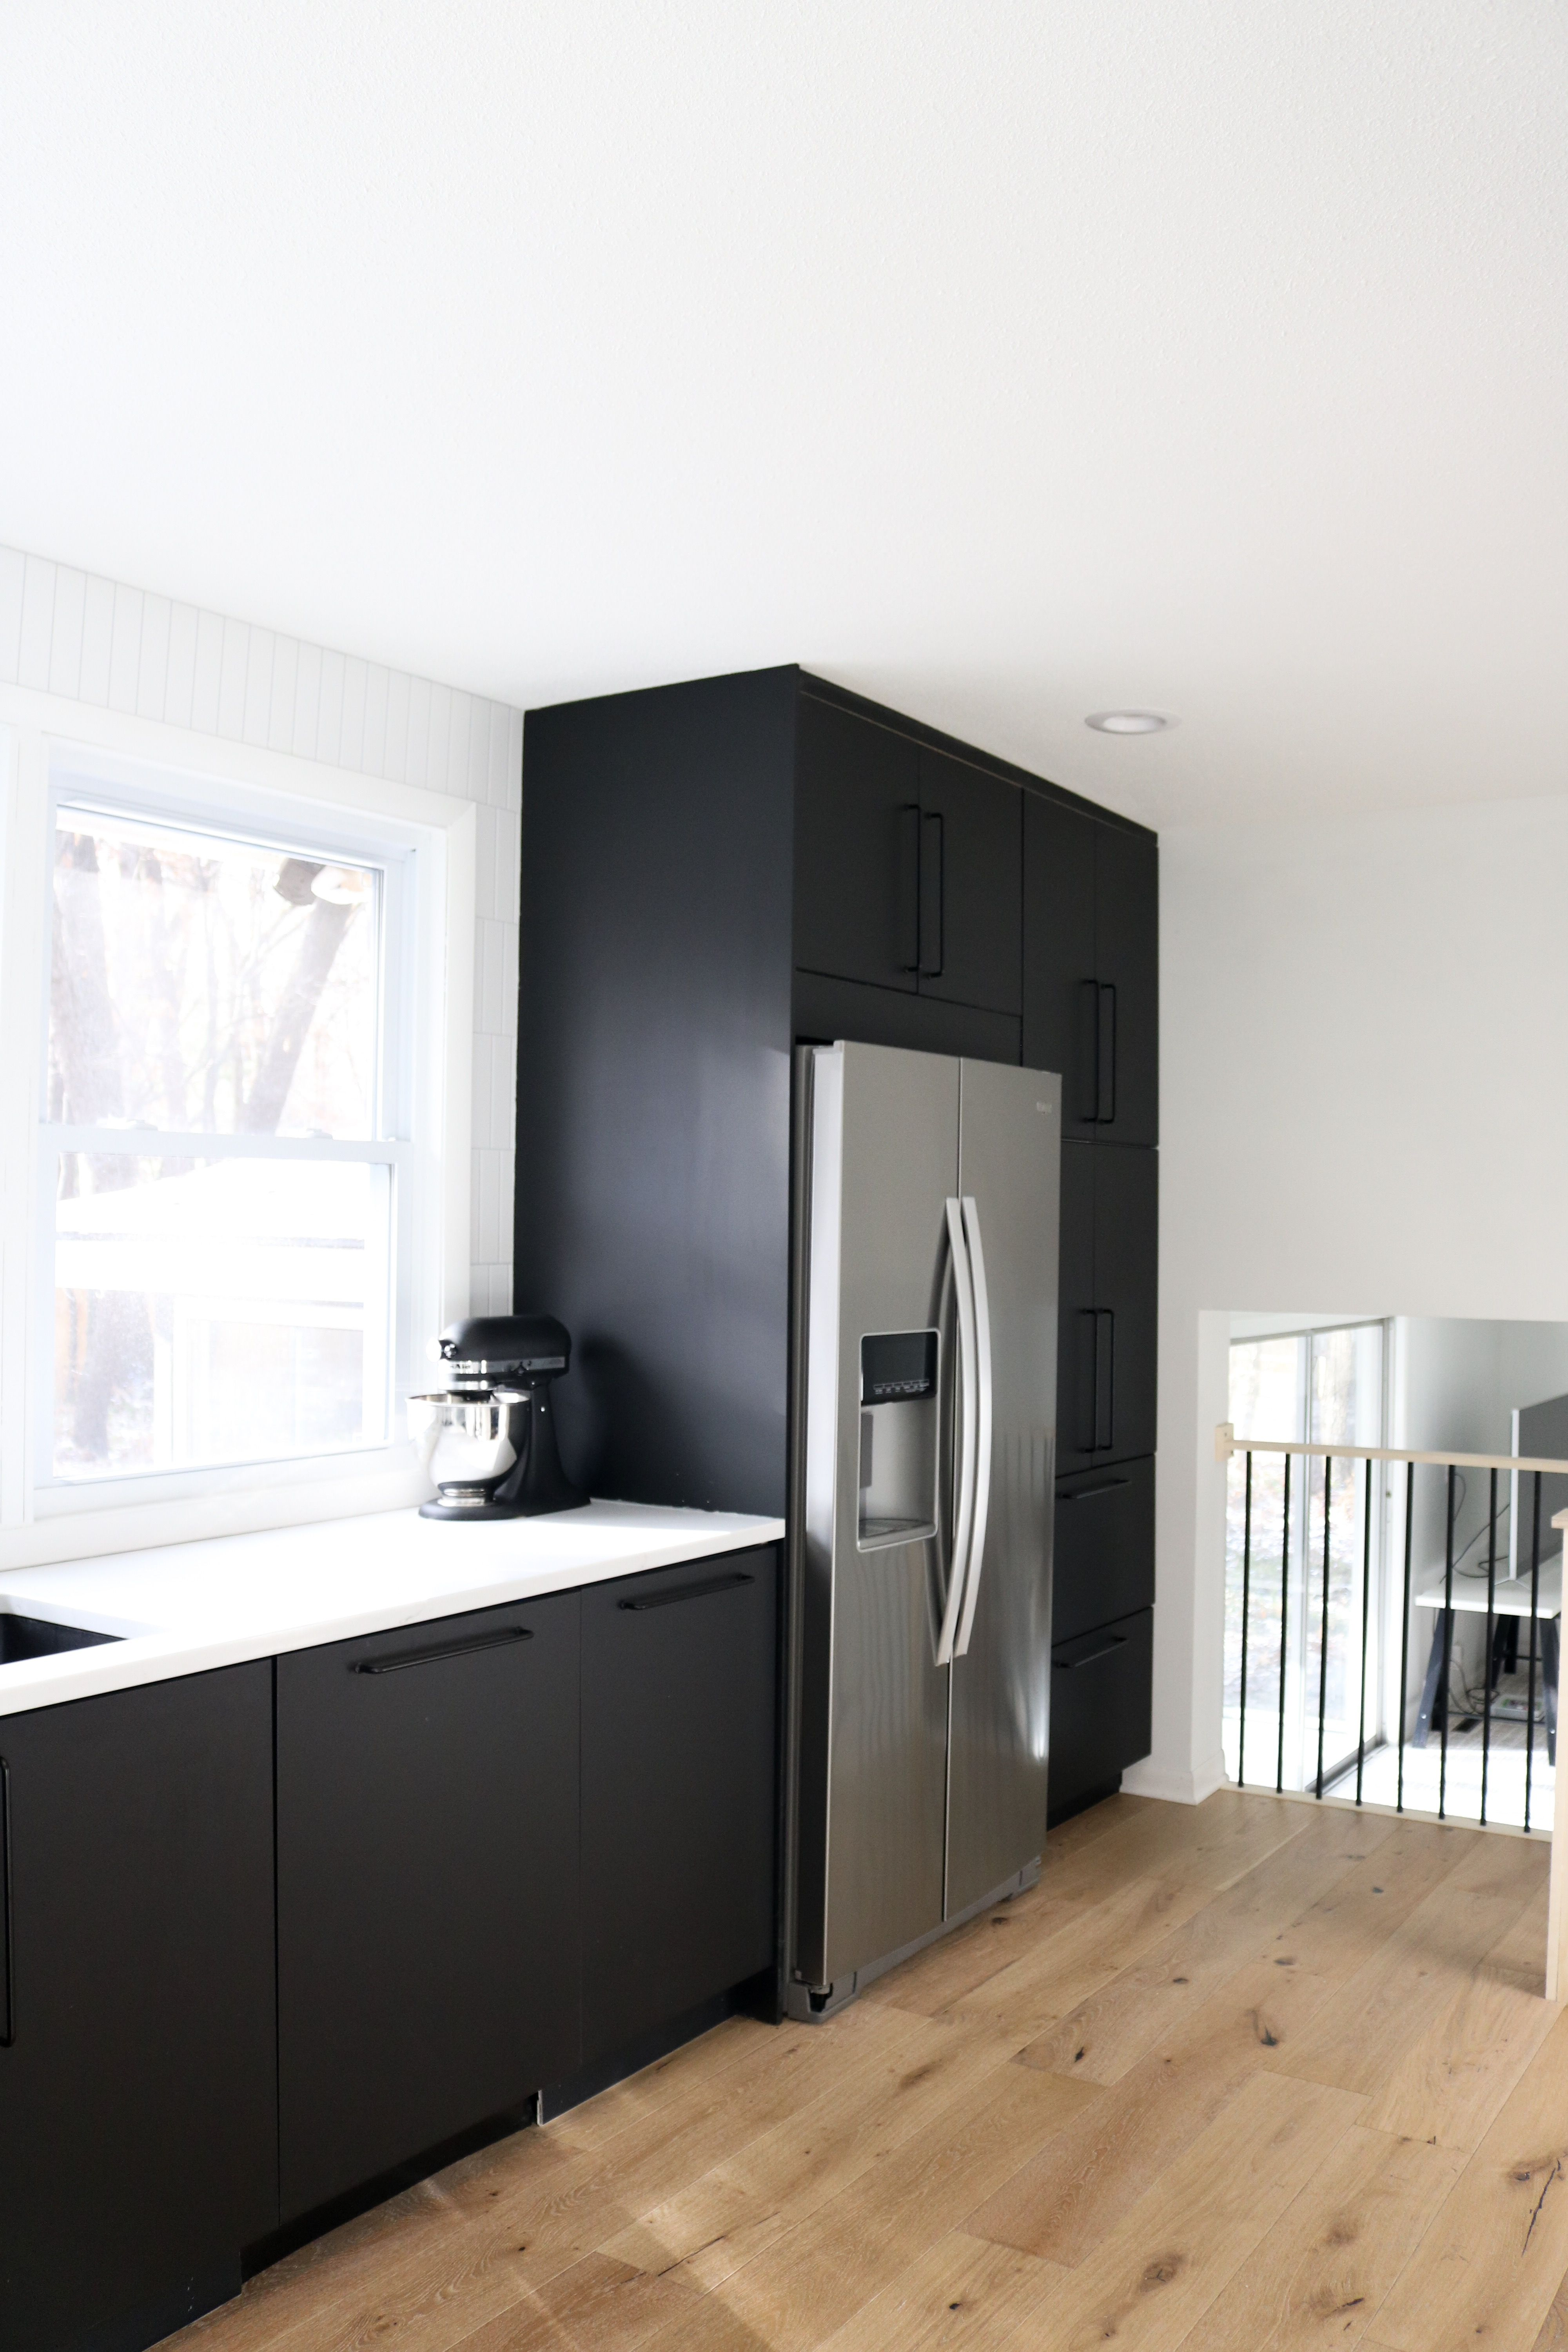 IKEA kungsbacka black kitchen full review of